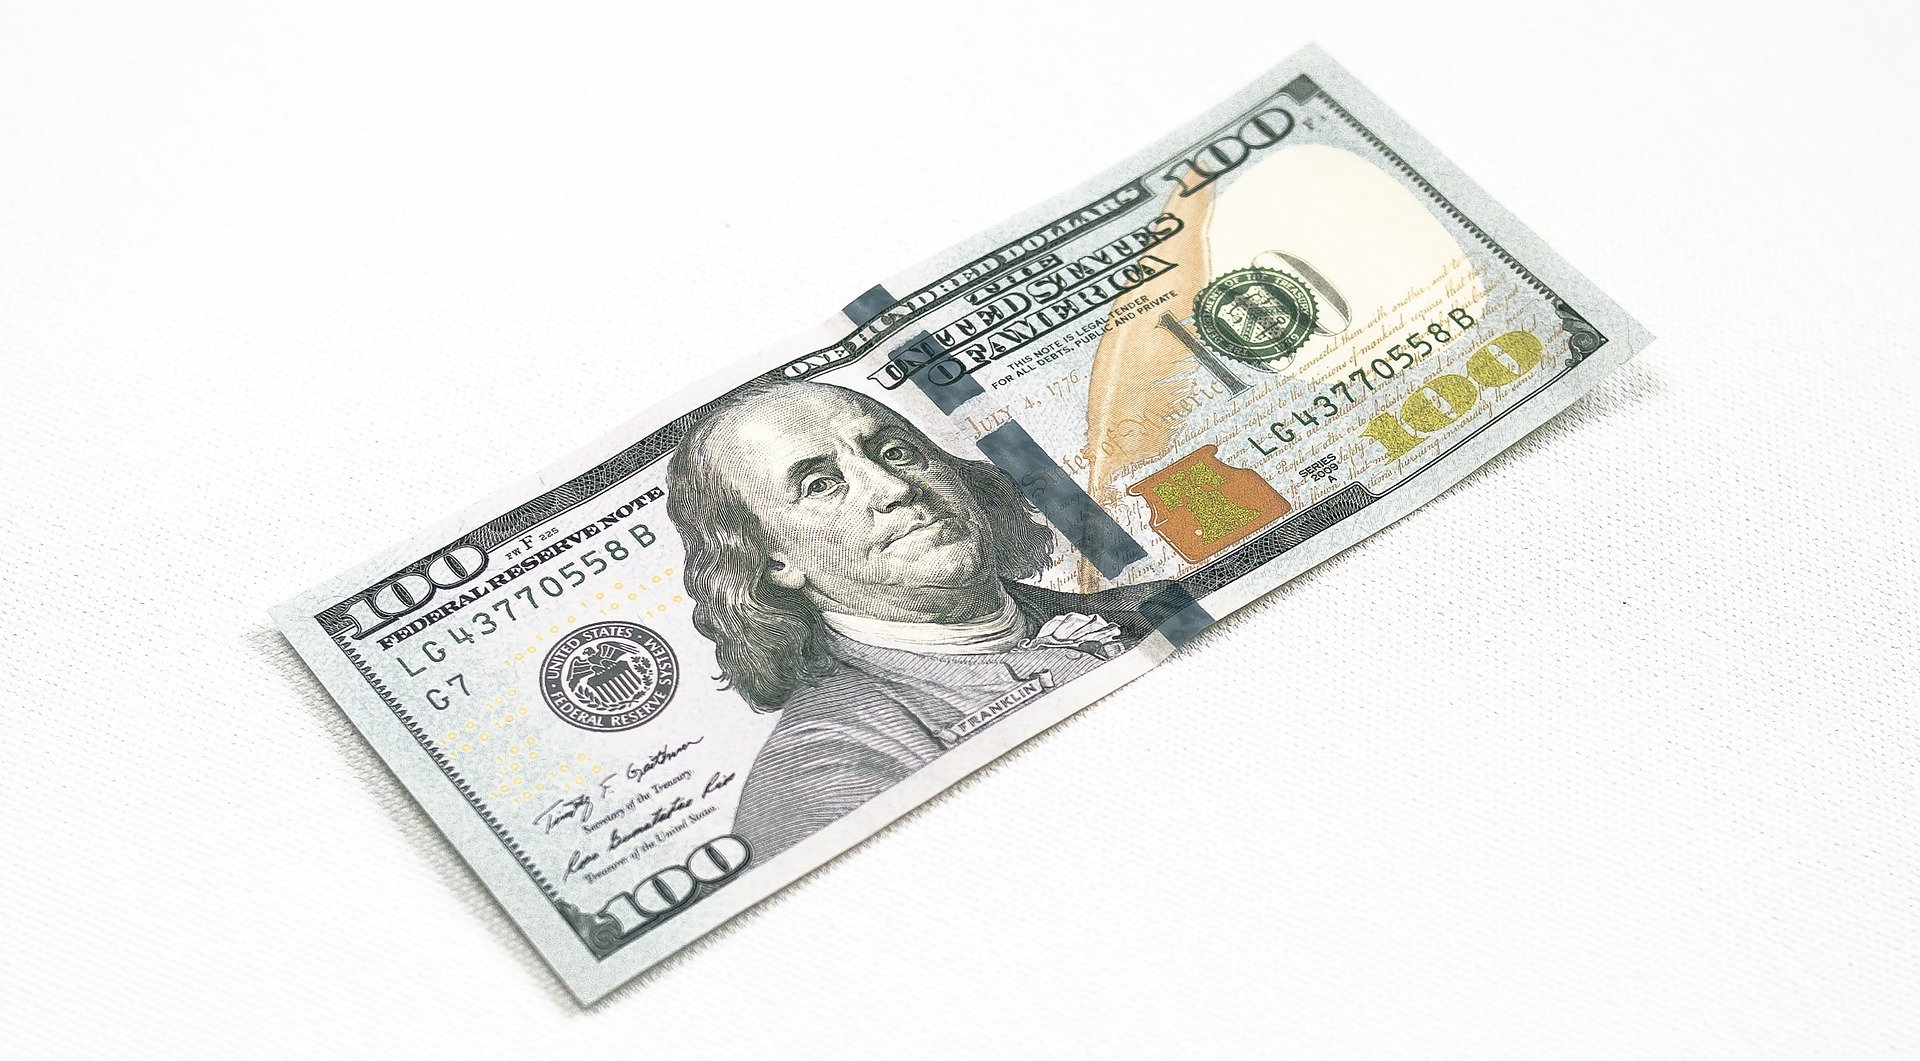 Pictured - A $100 dollar note   Source: Pixabay